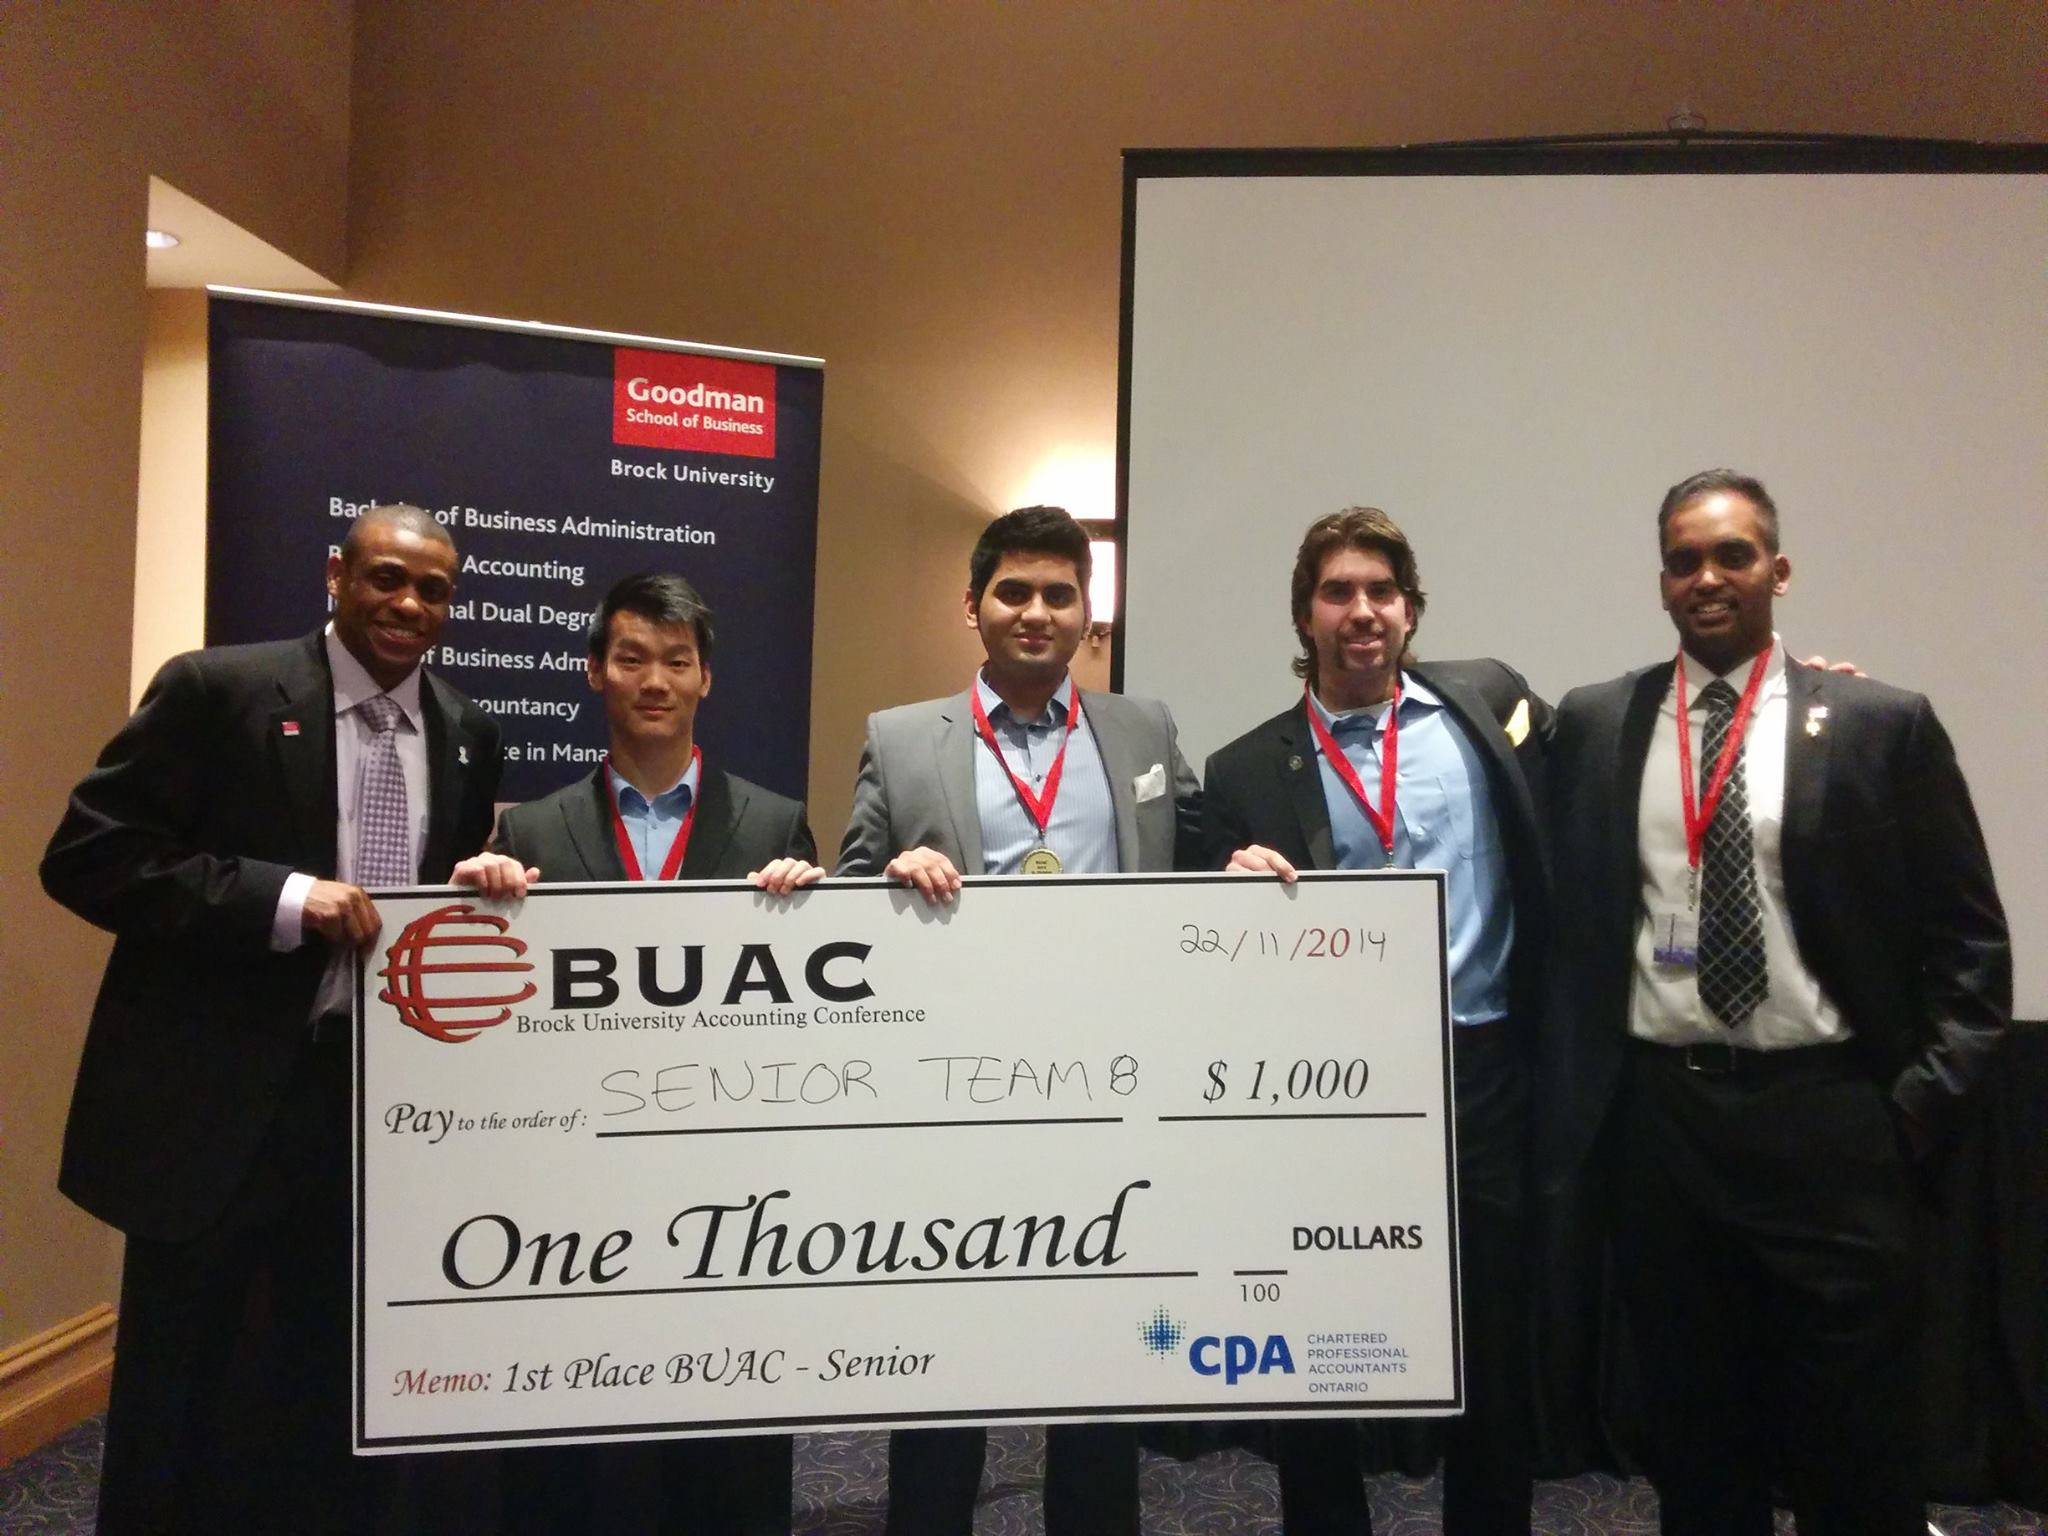 BUAC Senior Team 8 Victory Picture